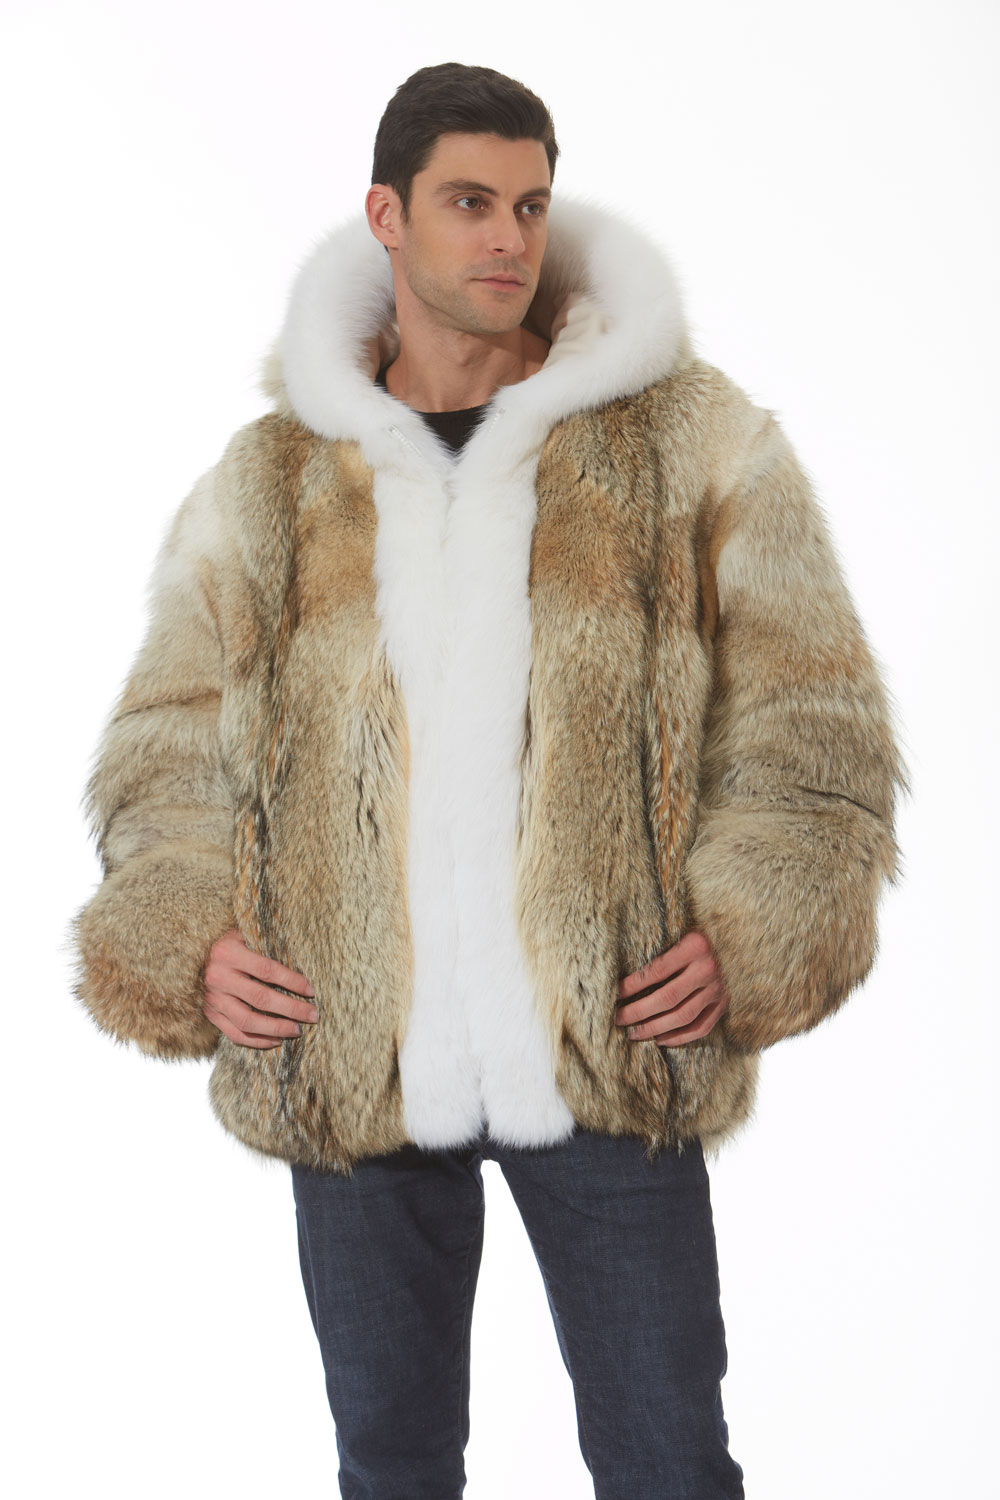 Details about Men's Hooded Coyote Fur Jacket Coat Parka White Fox Trim